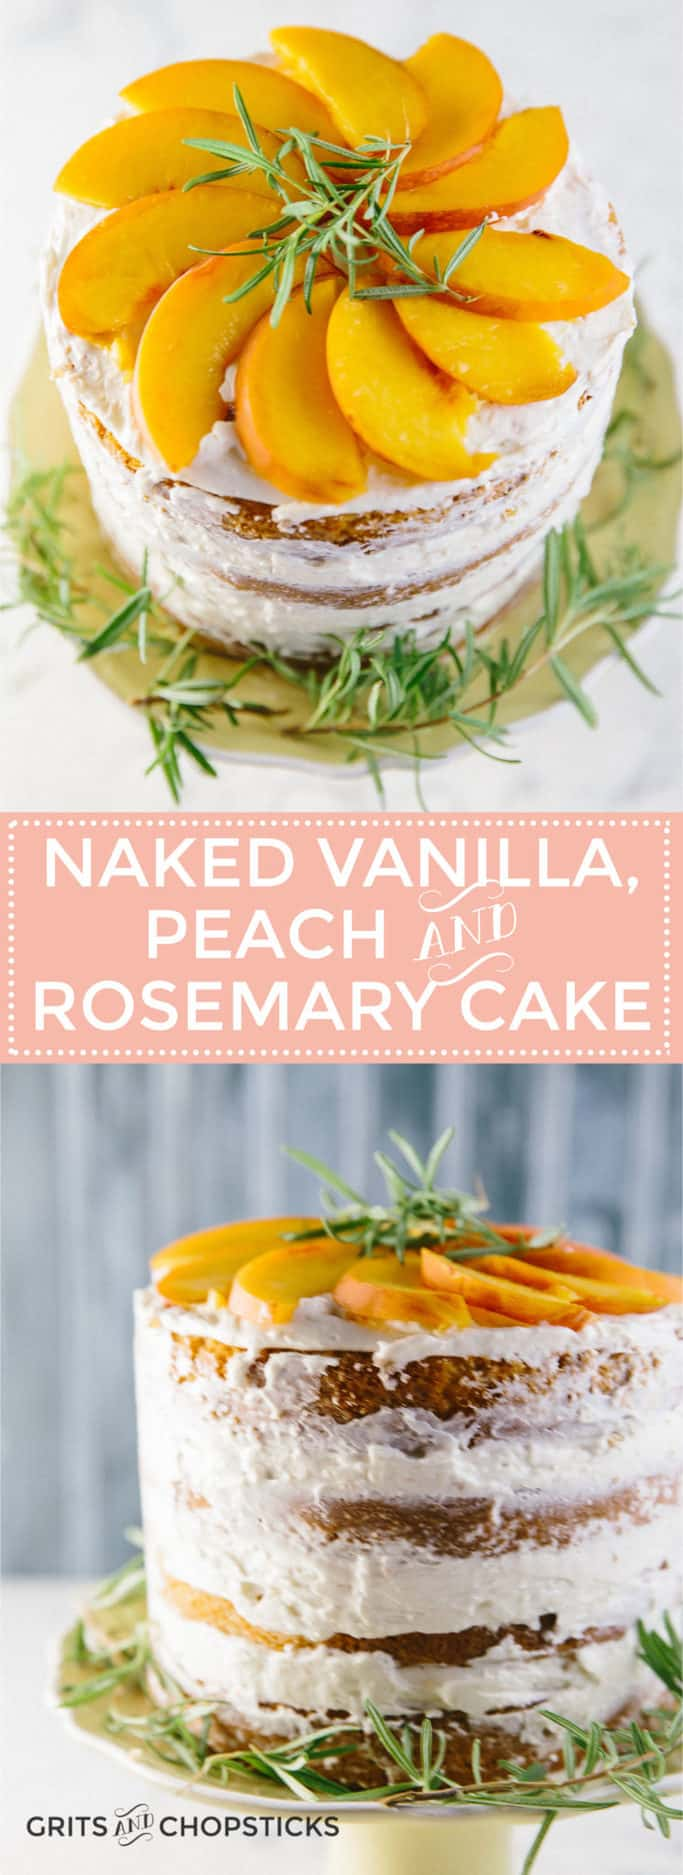 This semi-naked vanilla, peach and rosemary cake frosted with Italian buttercream icing totally hides the fact that I'm not a baker, so it should be easy enough for anyone to make.